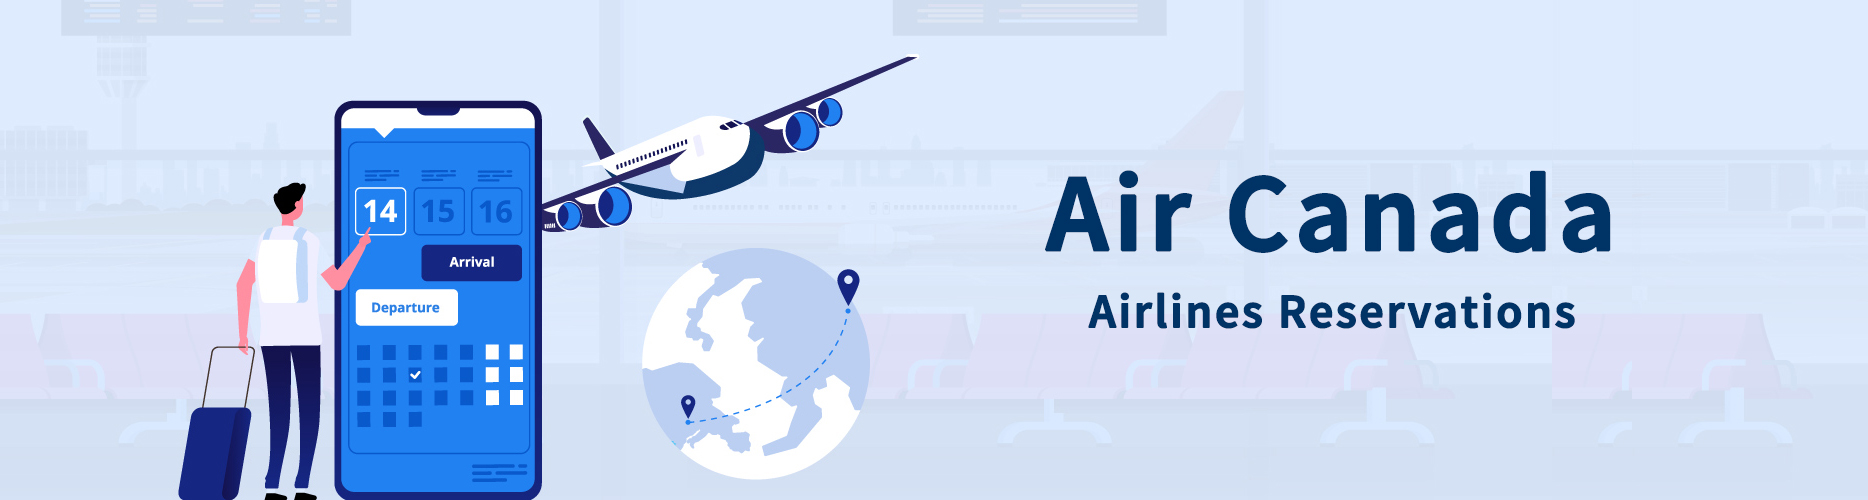 Air Canada Airlines Reservations - 30% Off - Air Canada Booking With Best Deals